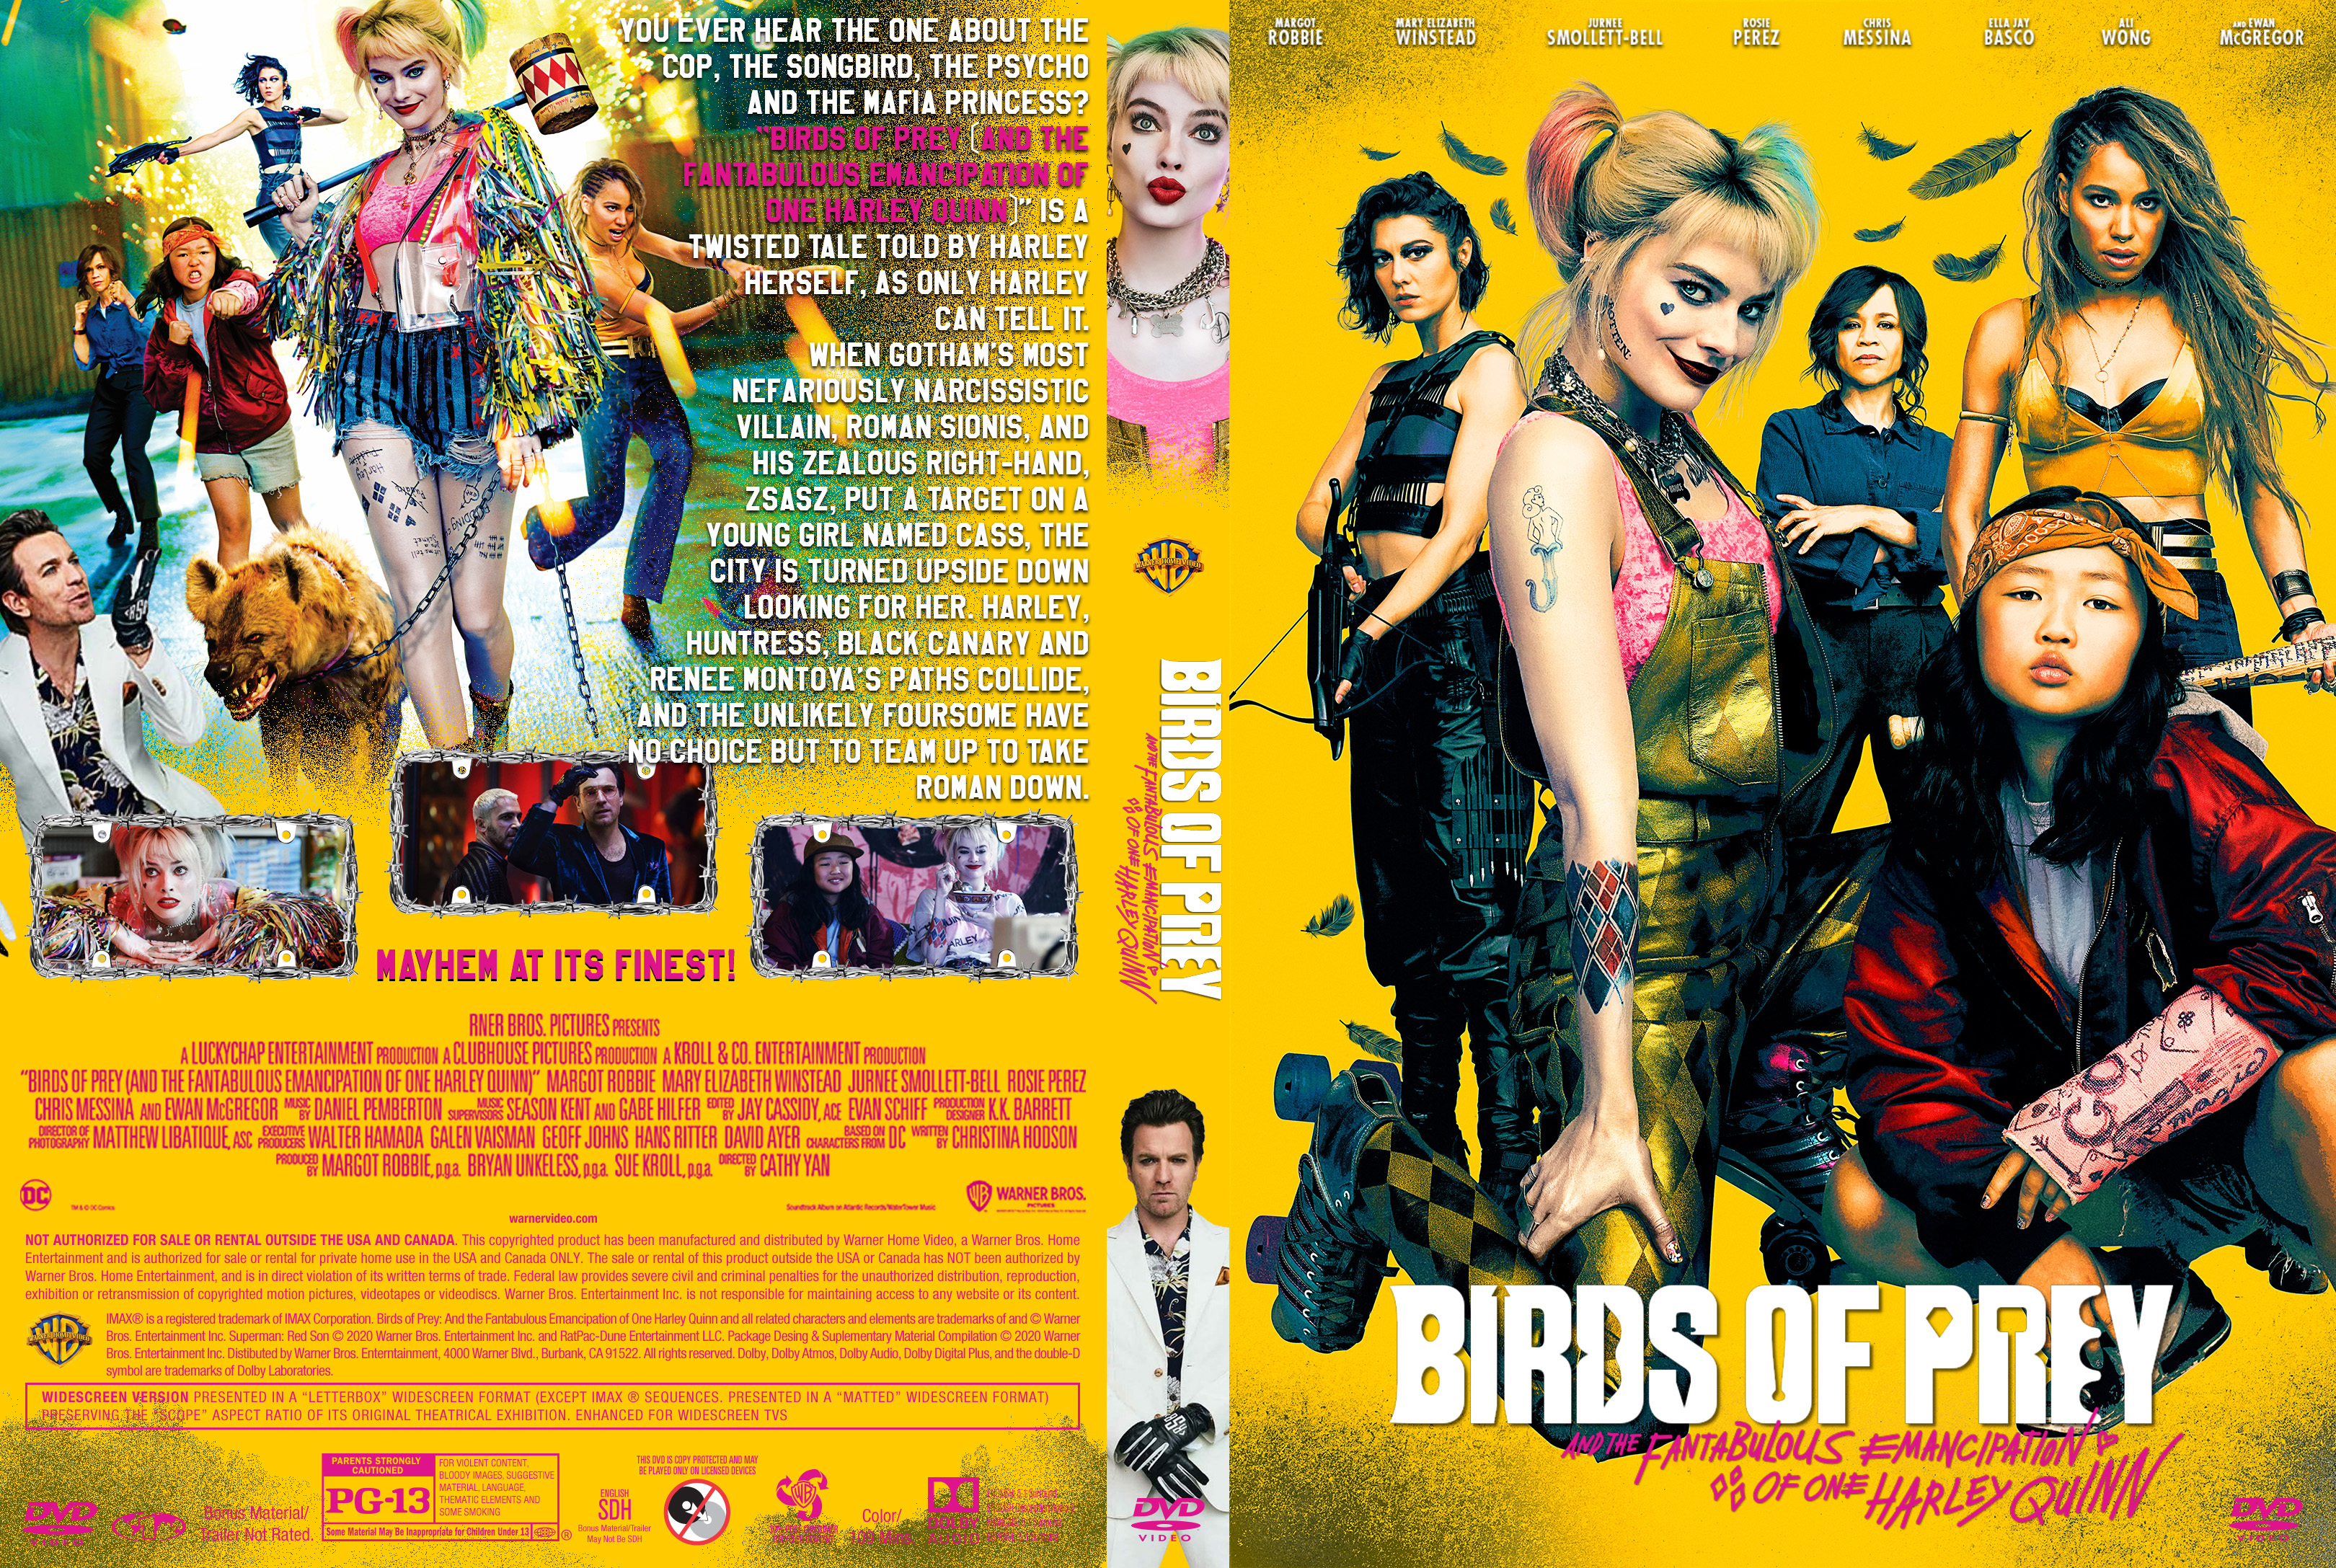 Birds Of Prey Front Dvd Covers Cover Century Over 500 000 Album Art Covers For Free